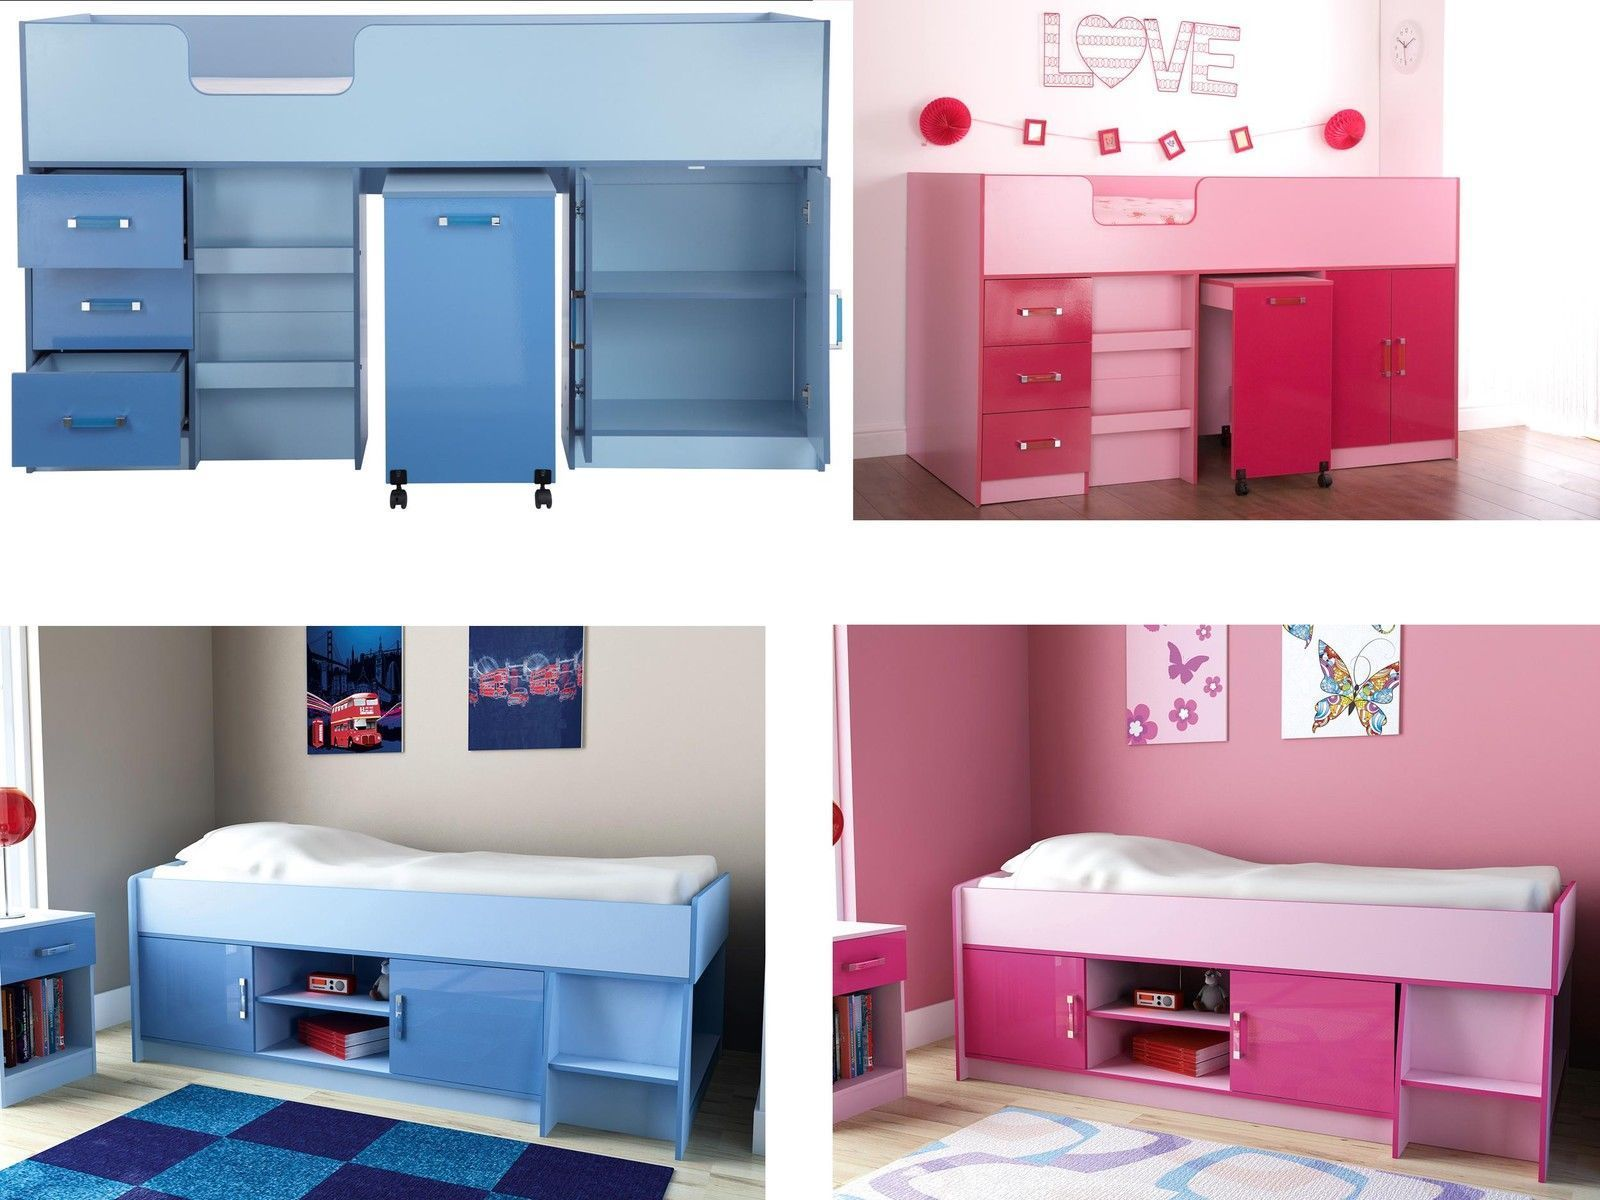 Swell Details About Caspian Gloss Bedroom Furniture Midsleeper Or Cabin Bed Boys Girls Blue Pink Download Free Architecture Designs Pushbritishbridgeorg